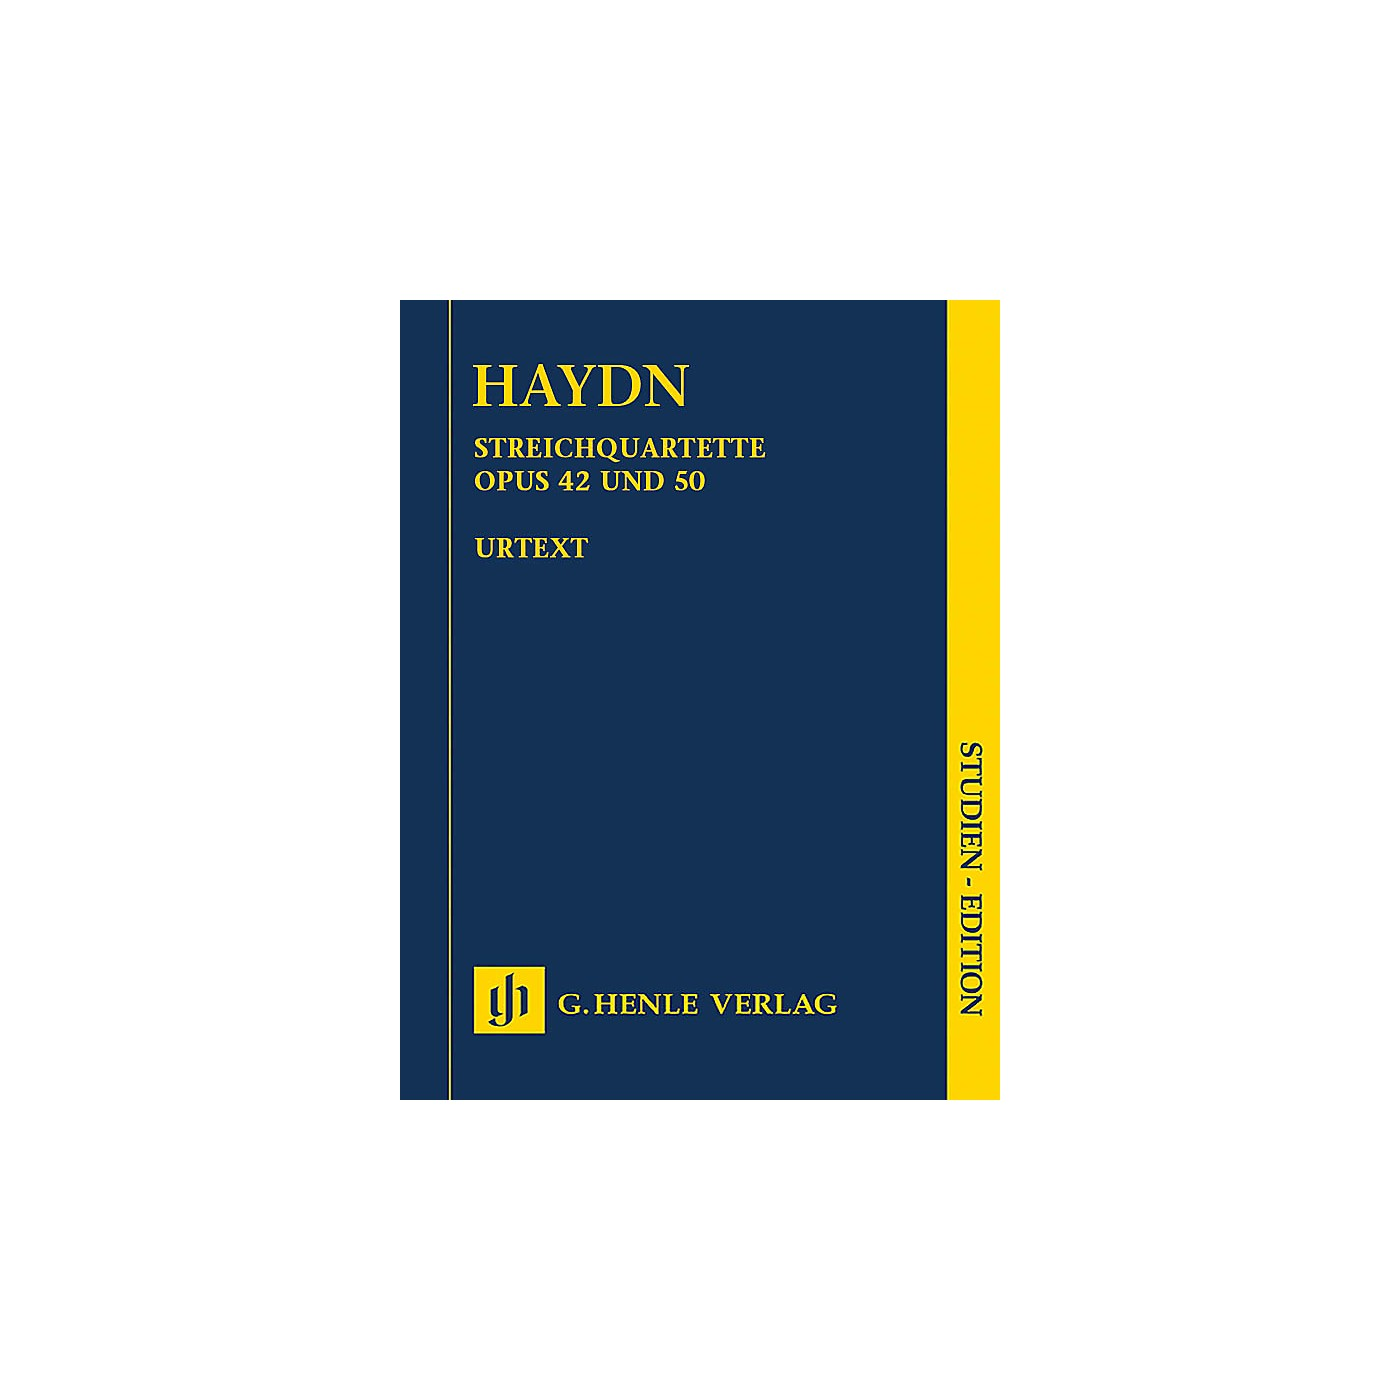 G. Henle Verlag String Quartets, Vol. VI, Op. 42 and Op. 50 (Prussian Quartets) Study Score by Haydn Edited by Webster thumbnail